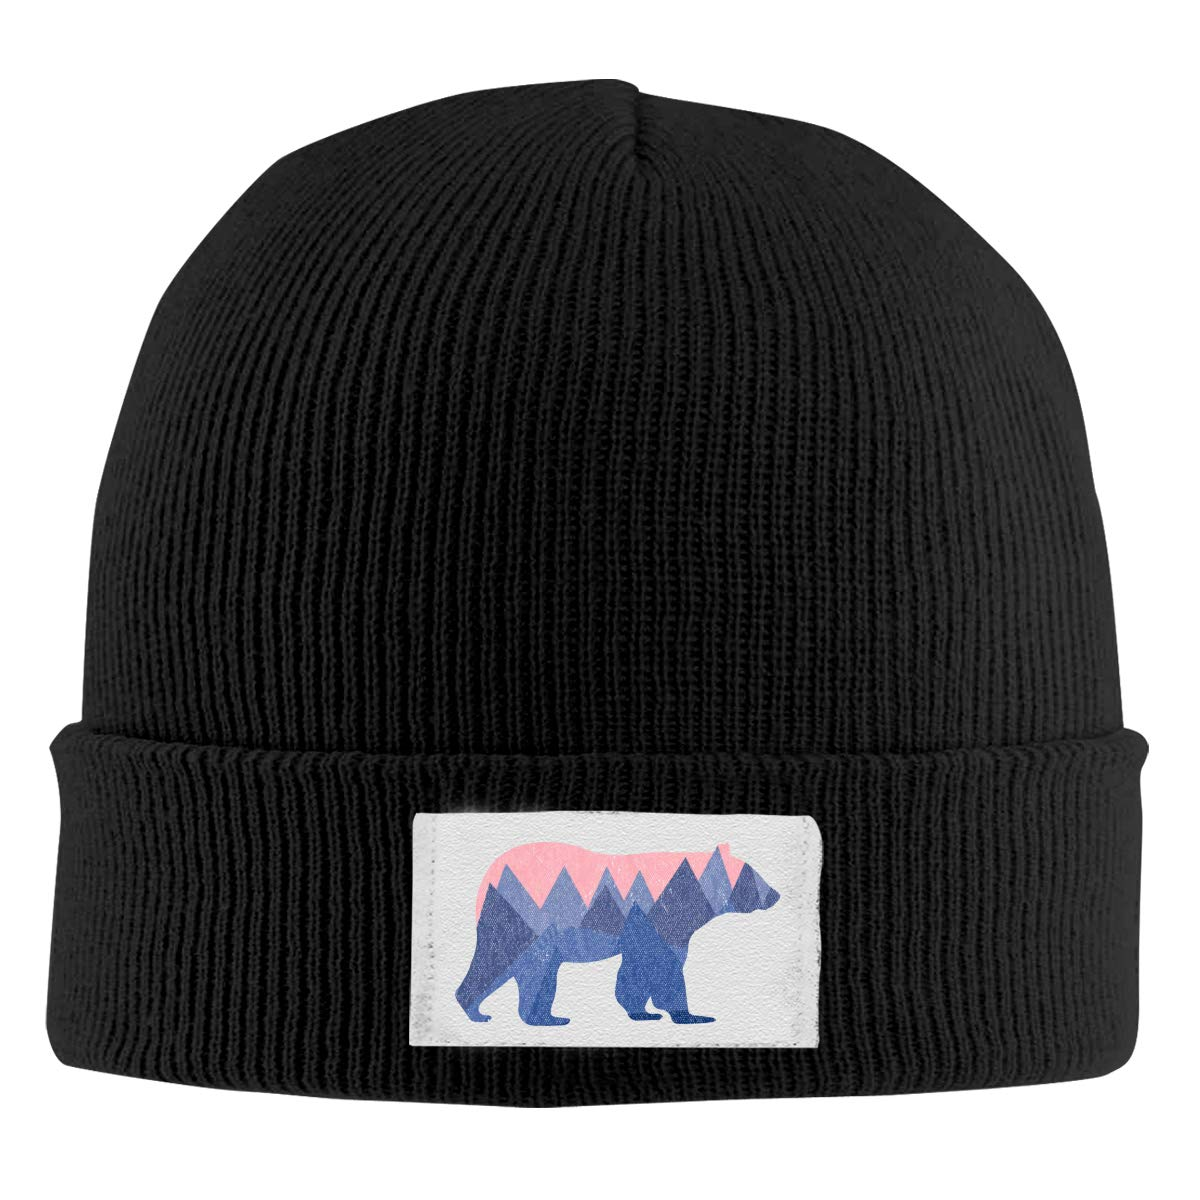 Skull Caps Bear Mountain Winter Warm Knit Hats Stretchy Cuff Beanie Hat Black